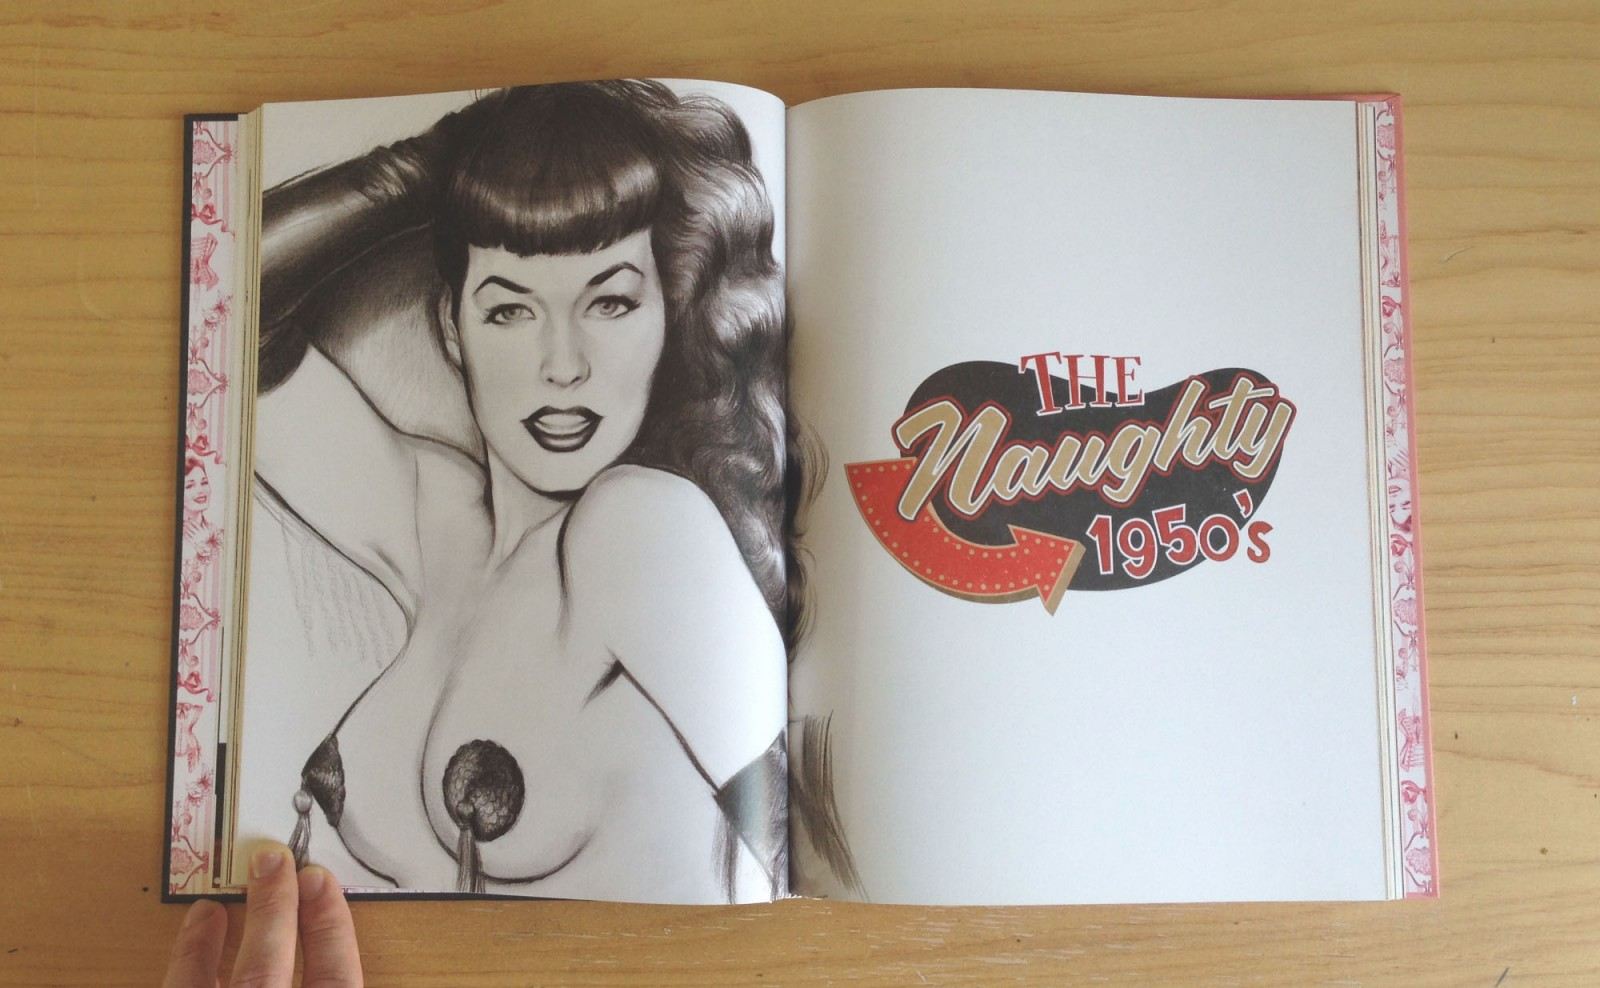 MALY-50s-TheNaughty-book